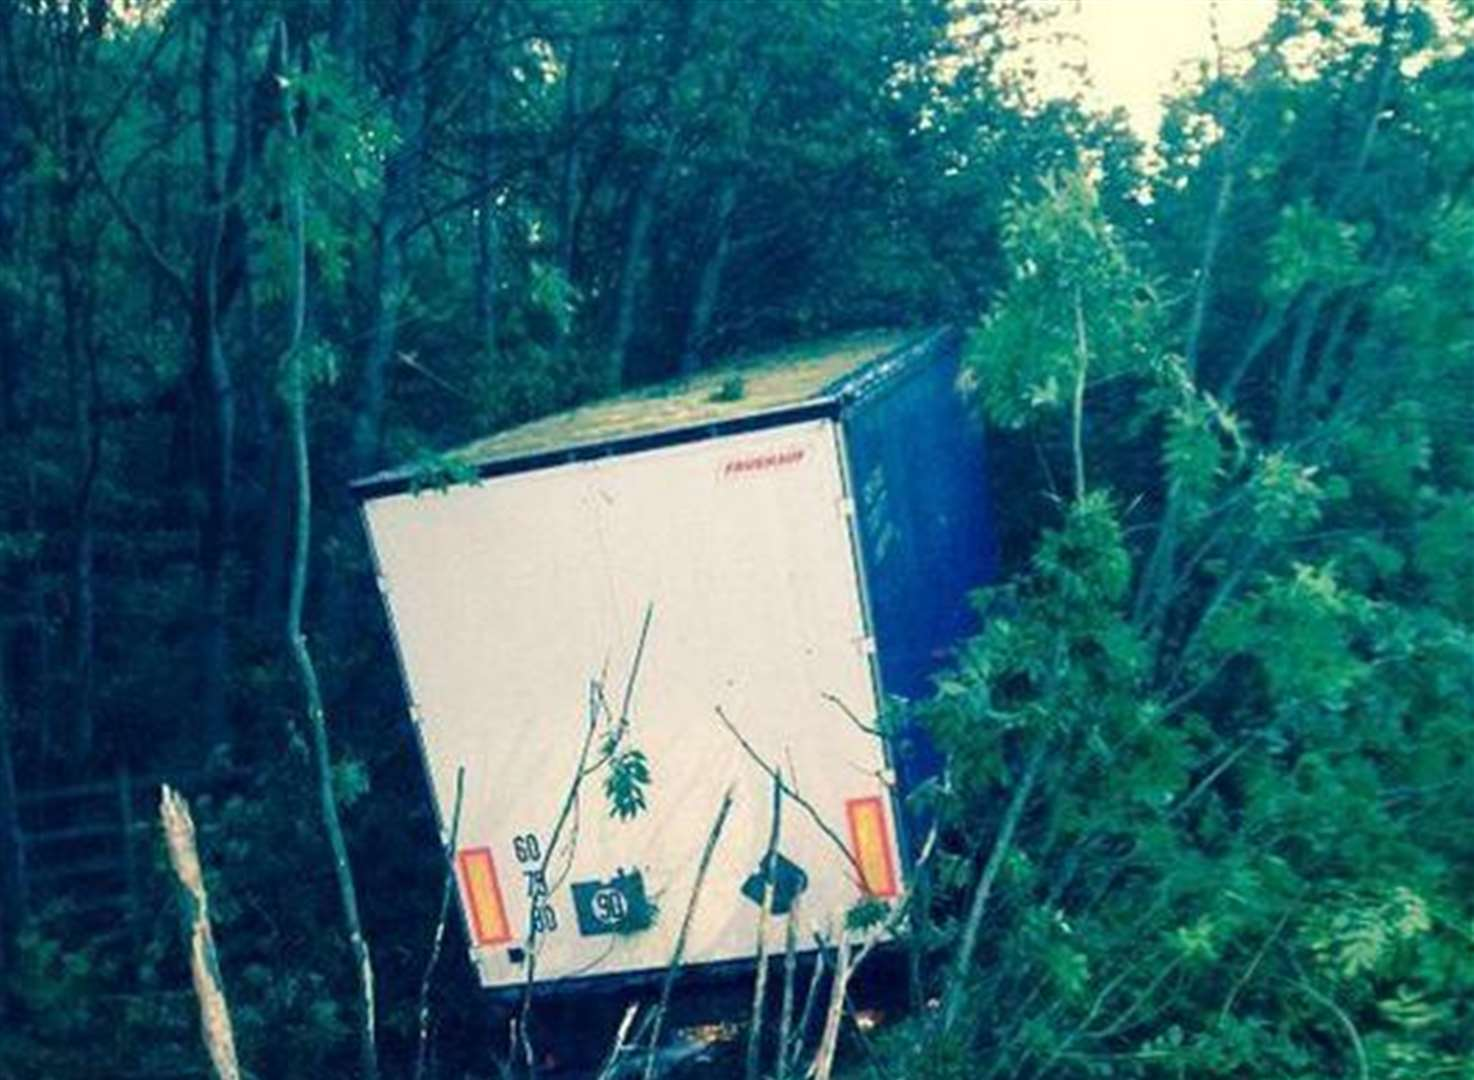 Lorry leaves motorway and plunges into trees